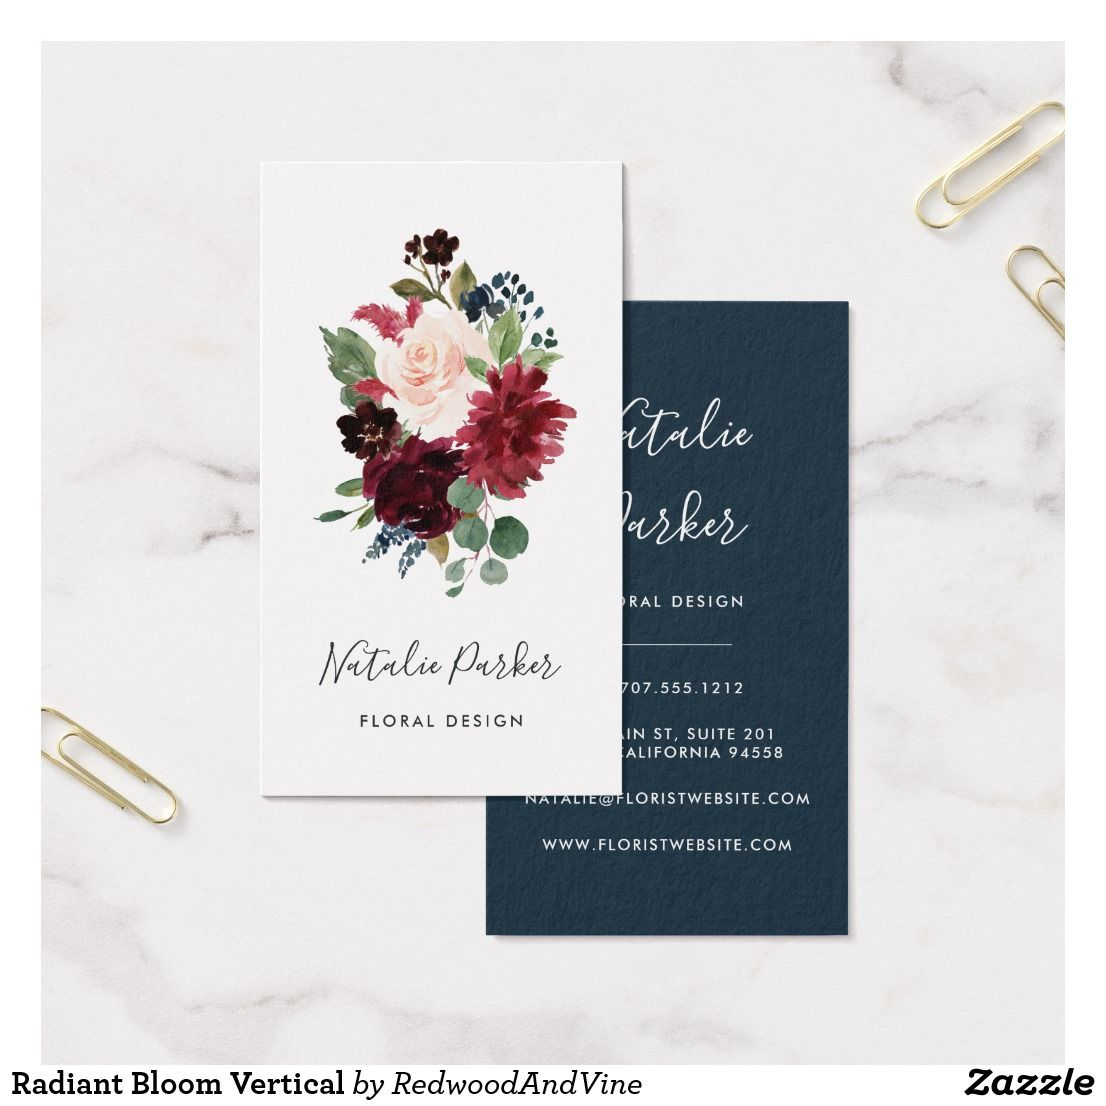 Radiant Bloom Vertical Business Card | Vertical business cards and ...